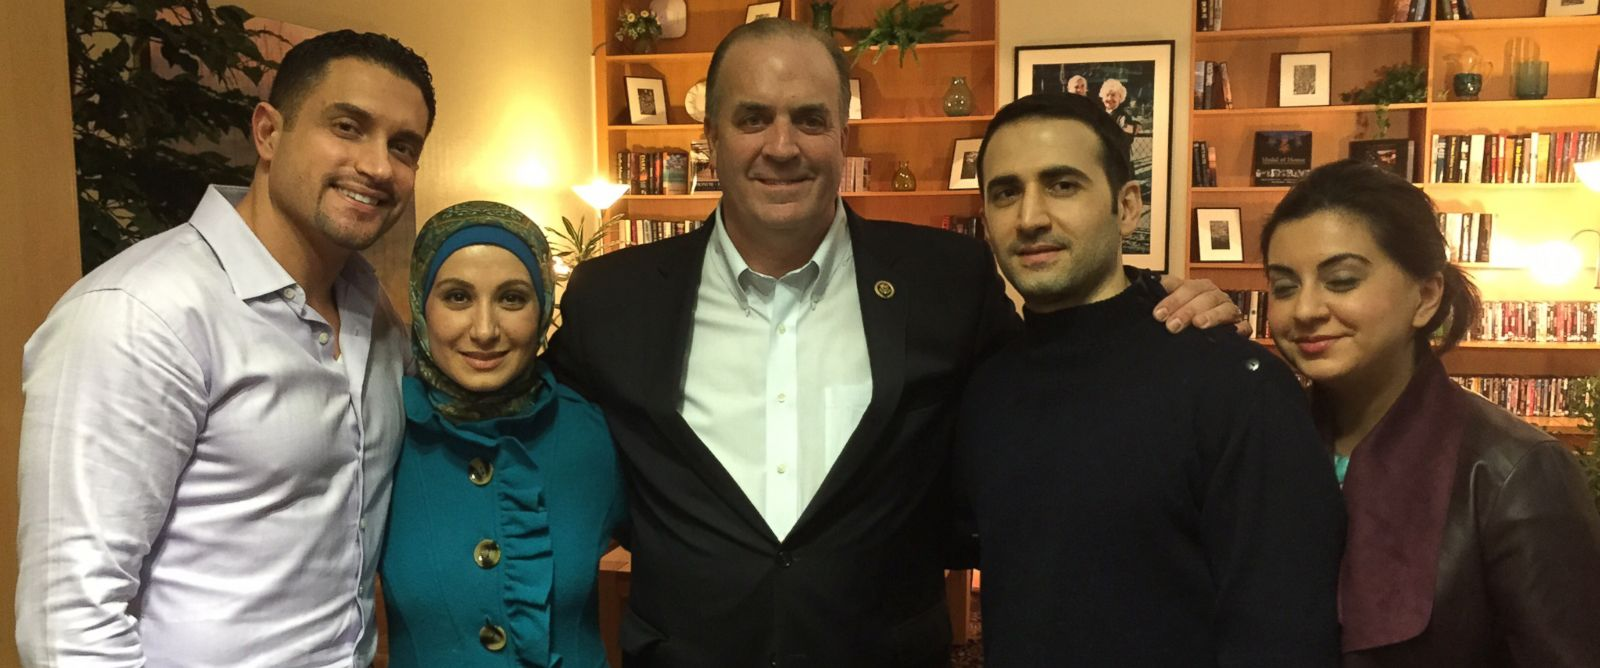 PHOTO: Dr. Ramy Kurdi, Sarah Hekmati, Congressman Dan Kildee, Amir Hekmati and Leila Hekmati. This was the first time the Hekmati family met in person with Amir Hekmati at the Landstuhl Regional Medical Center in Germany.